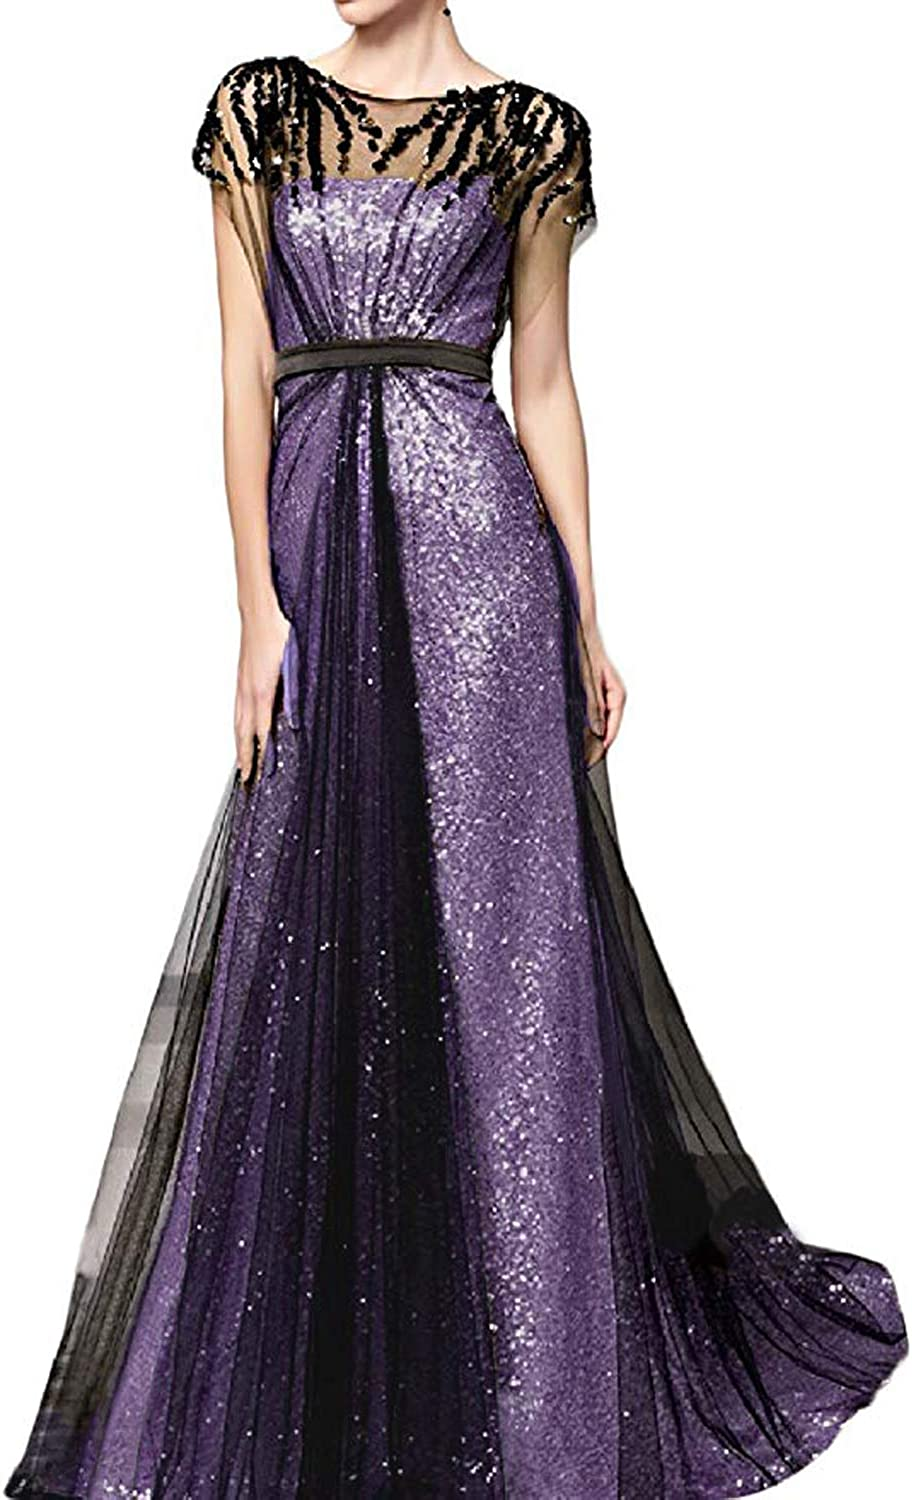 CIRCLEWLD Aline Sequined Evening Gown with Black Tulle Cover Women's Formal Dresses E212